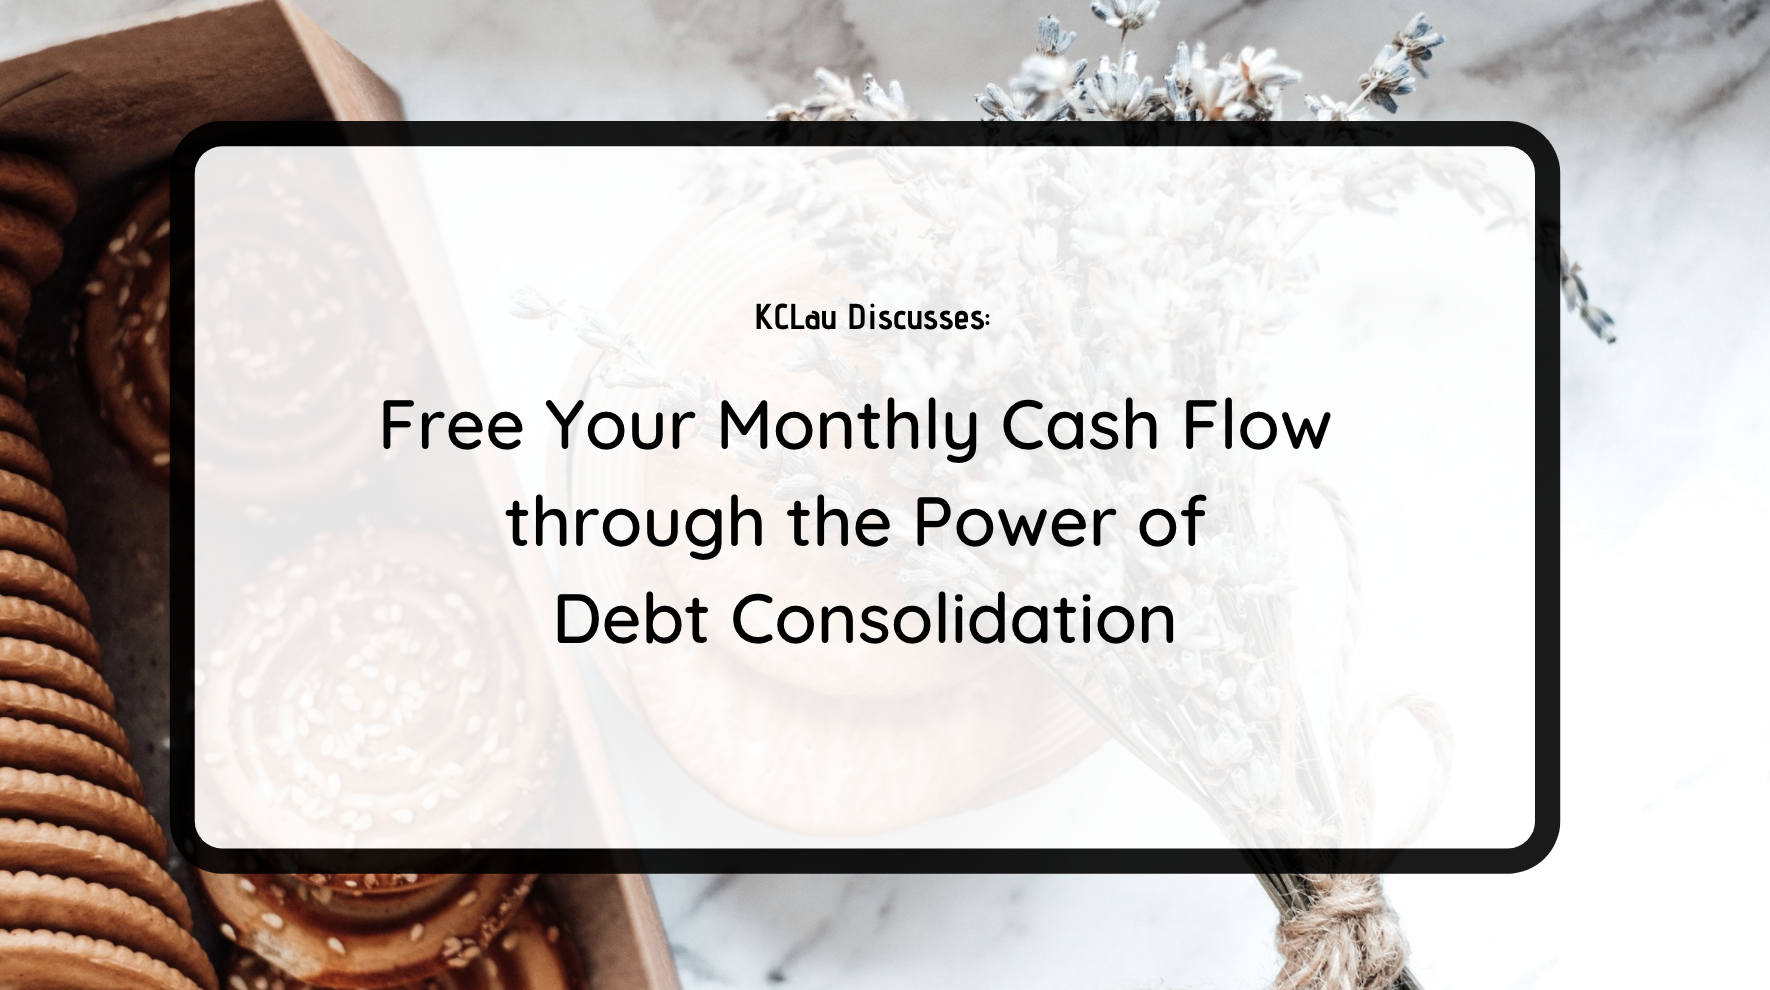 Free Your Monthly Cash Flow through the Power of Debt Consolidation